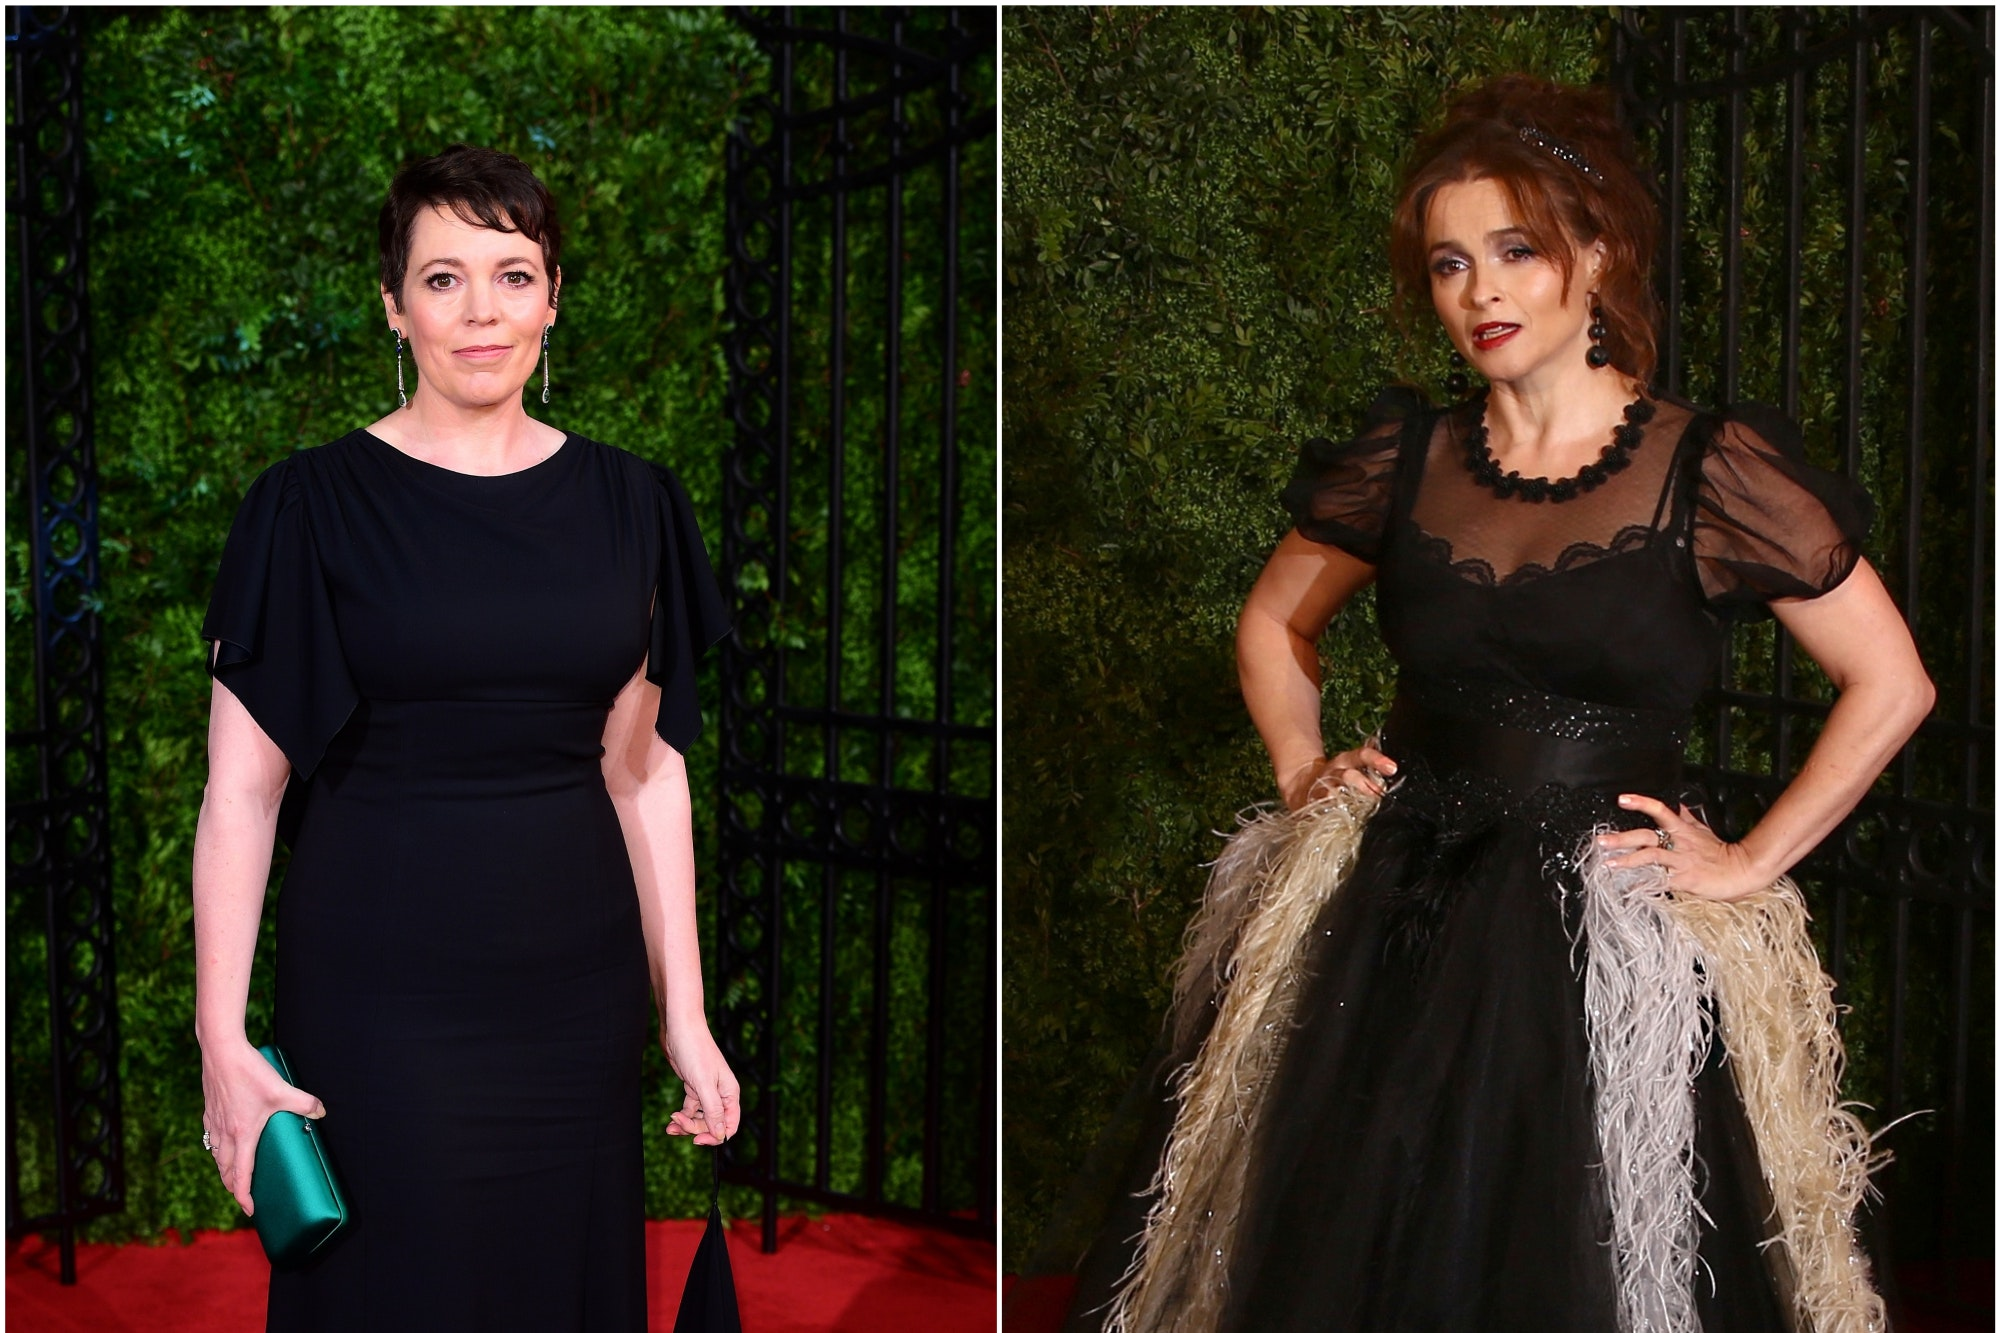 Olivia Colman and Helena Bonham Carter turn heads at The Crown premiere - Daily Echo